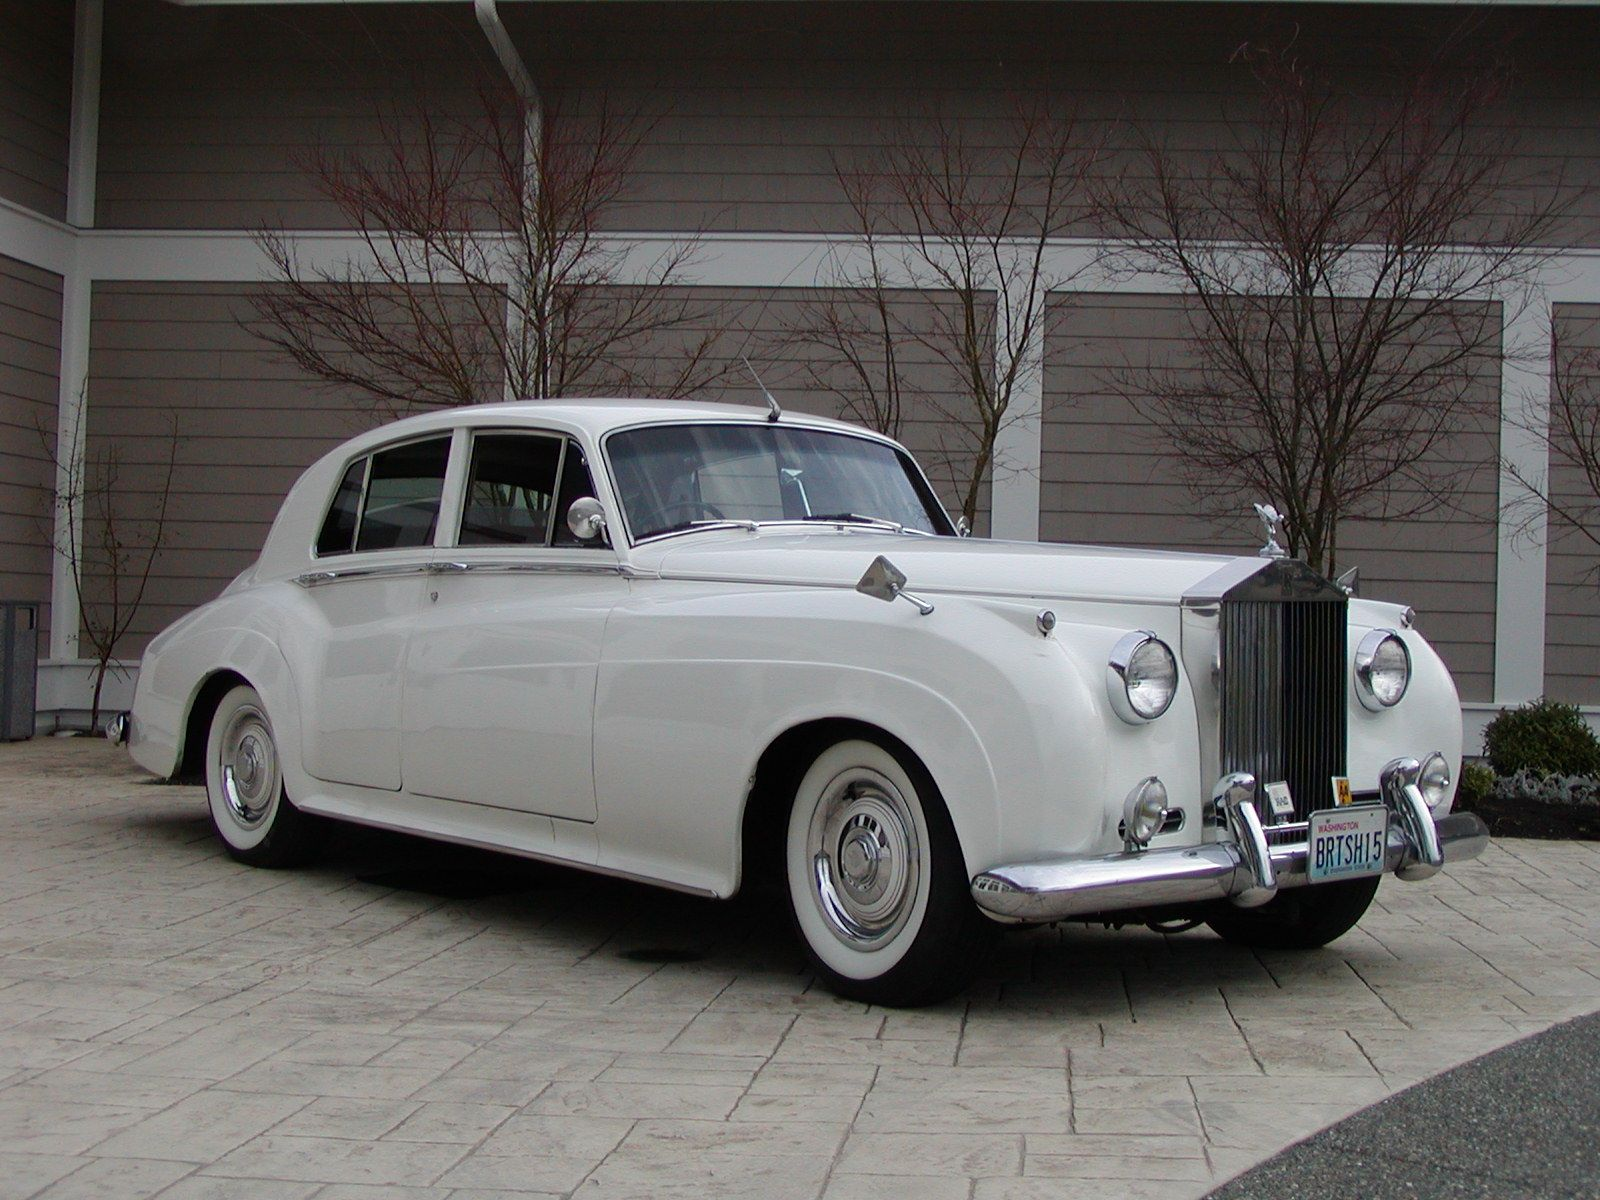 Best Vintage Rolls Royce Ideas On Pinterest Old Vintage Cars